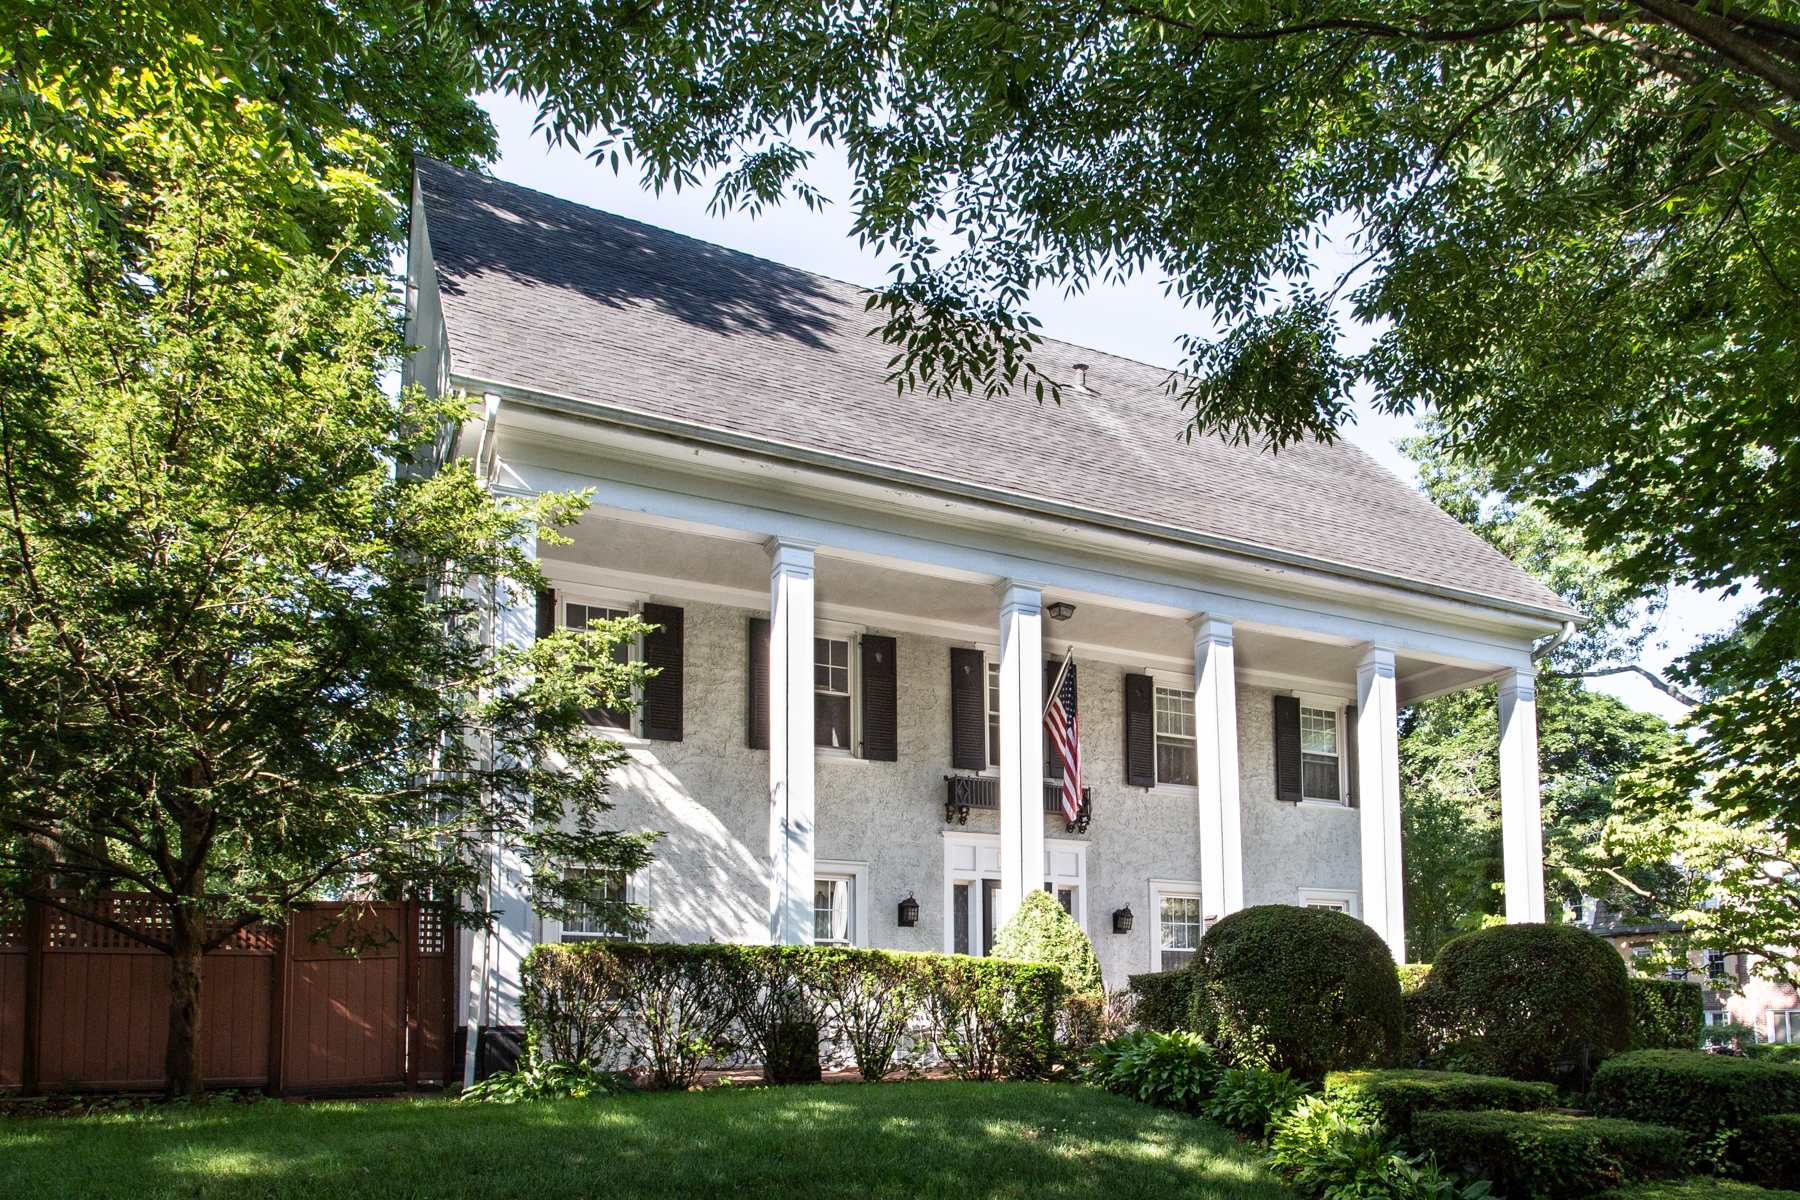 """Single Family Homes for Sale at """"CHARMING CENTER HALL COLONIAL"""" 72-70 Kessel Street, Forest Hills, New York 11375 United States"""